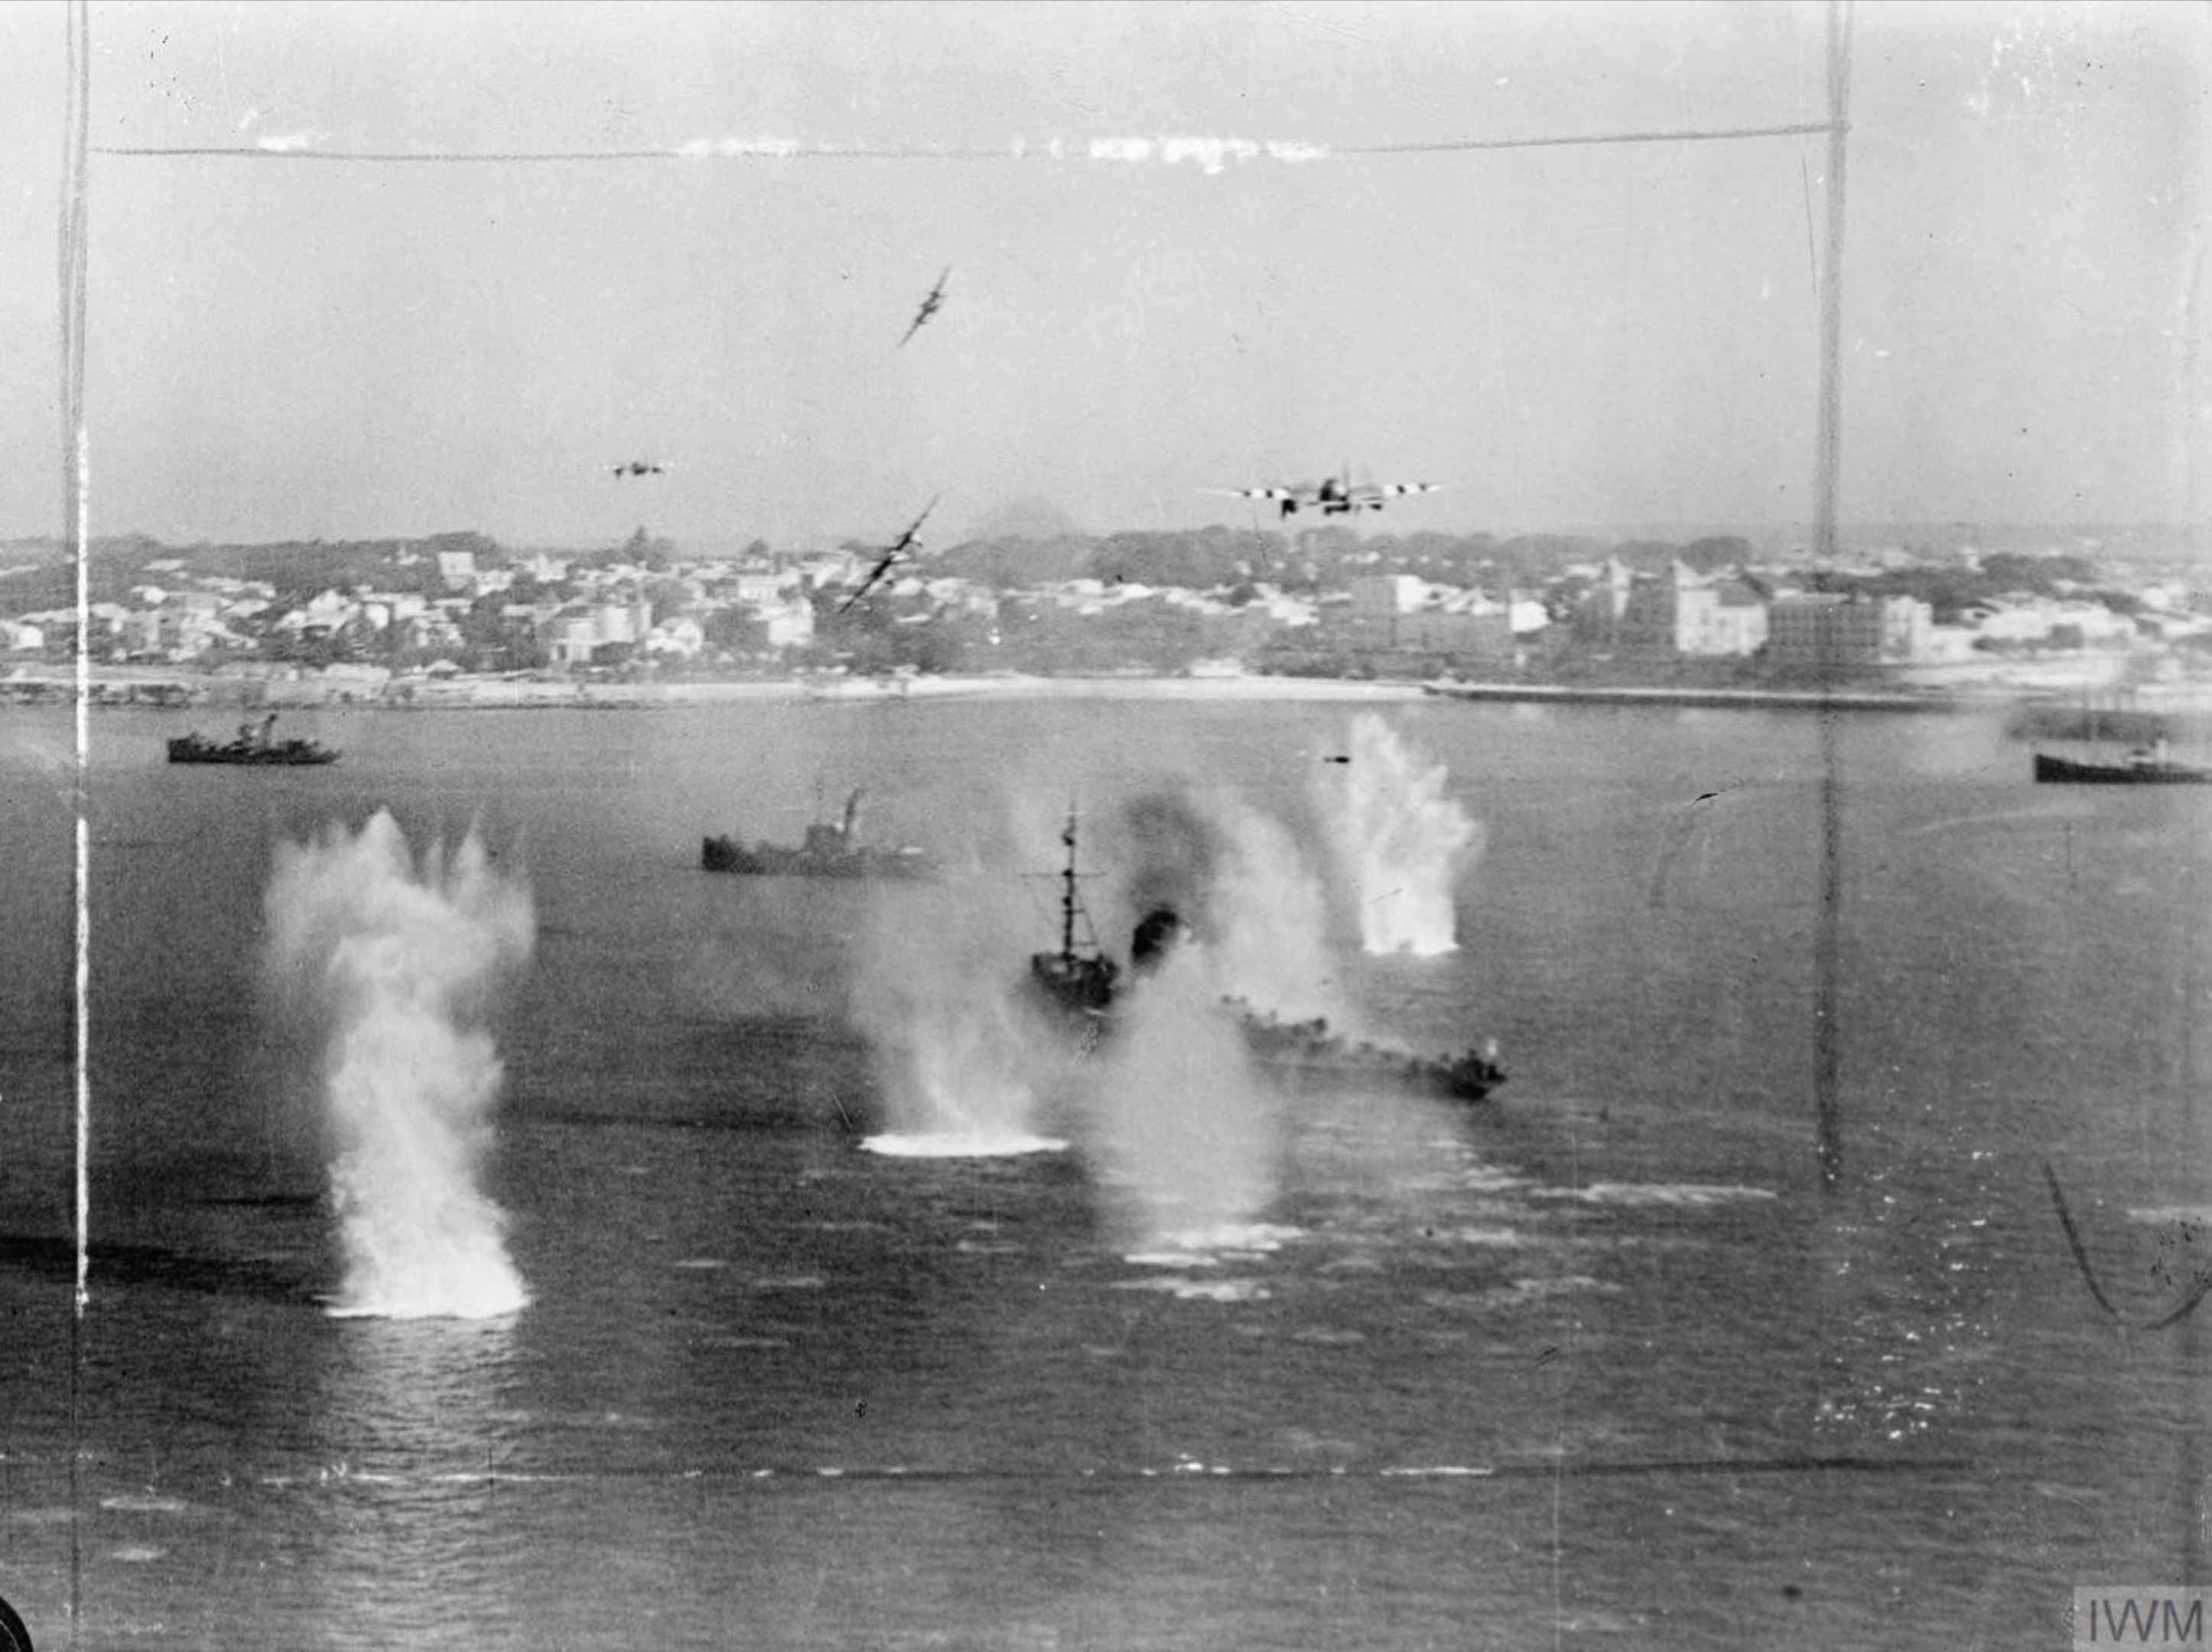 Mosquito FB also attack the minesweeper which blew up Royan France June 1944 IWM C4551